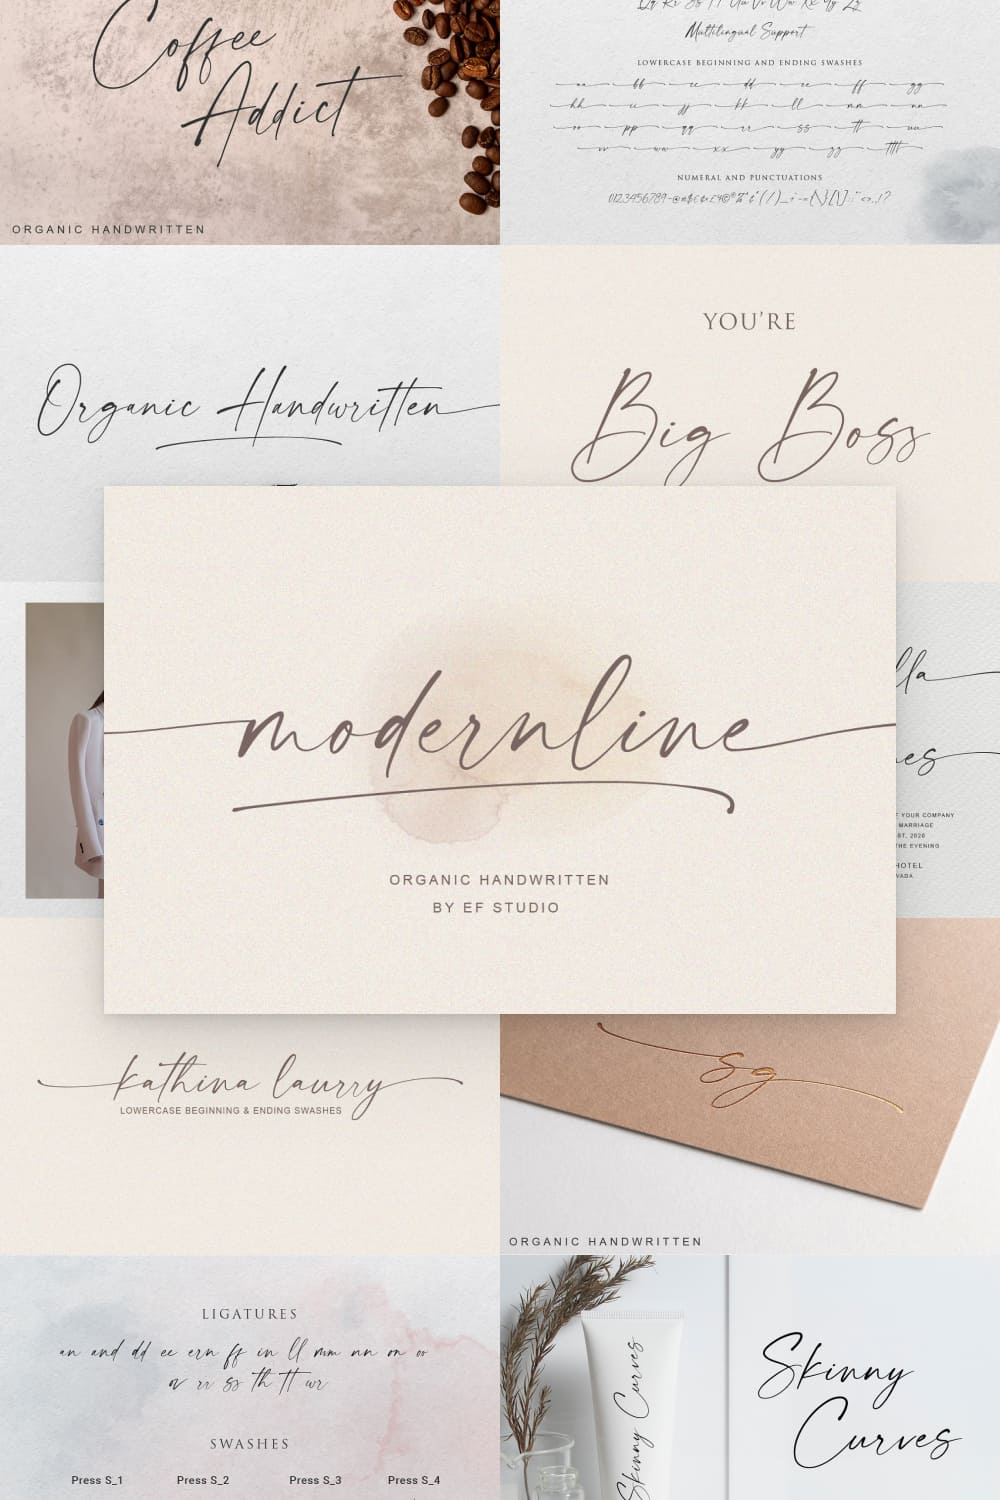 Modernline is an organic handwritten font that is suitable for branding, signature, wedding invitation, promotion, product packaging, and other needs. This font is modern, simple, but still authentic.